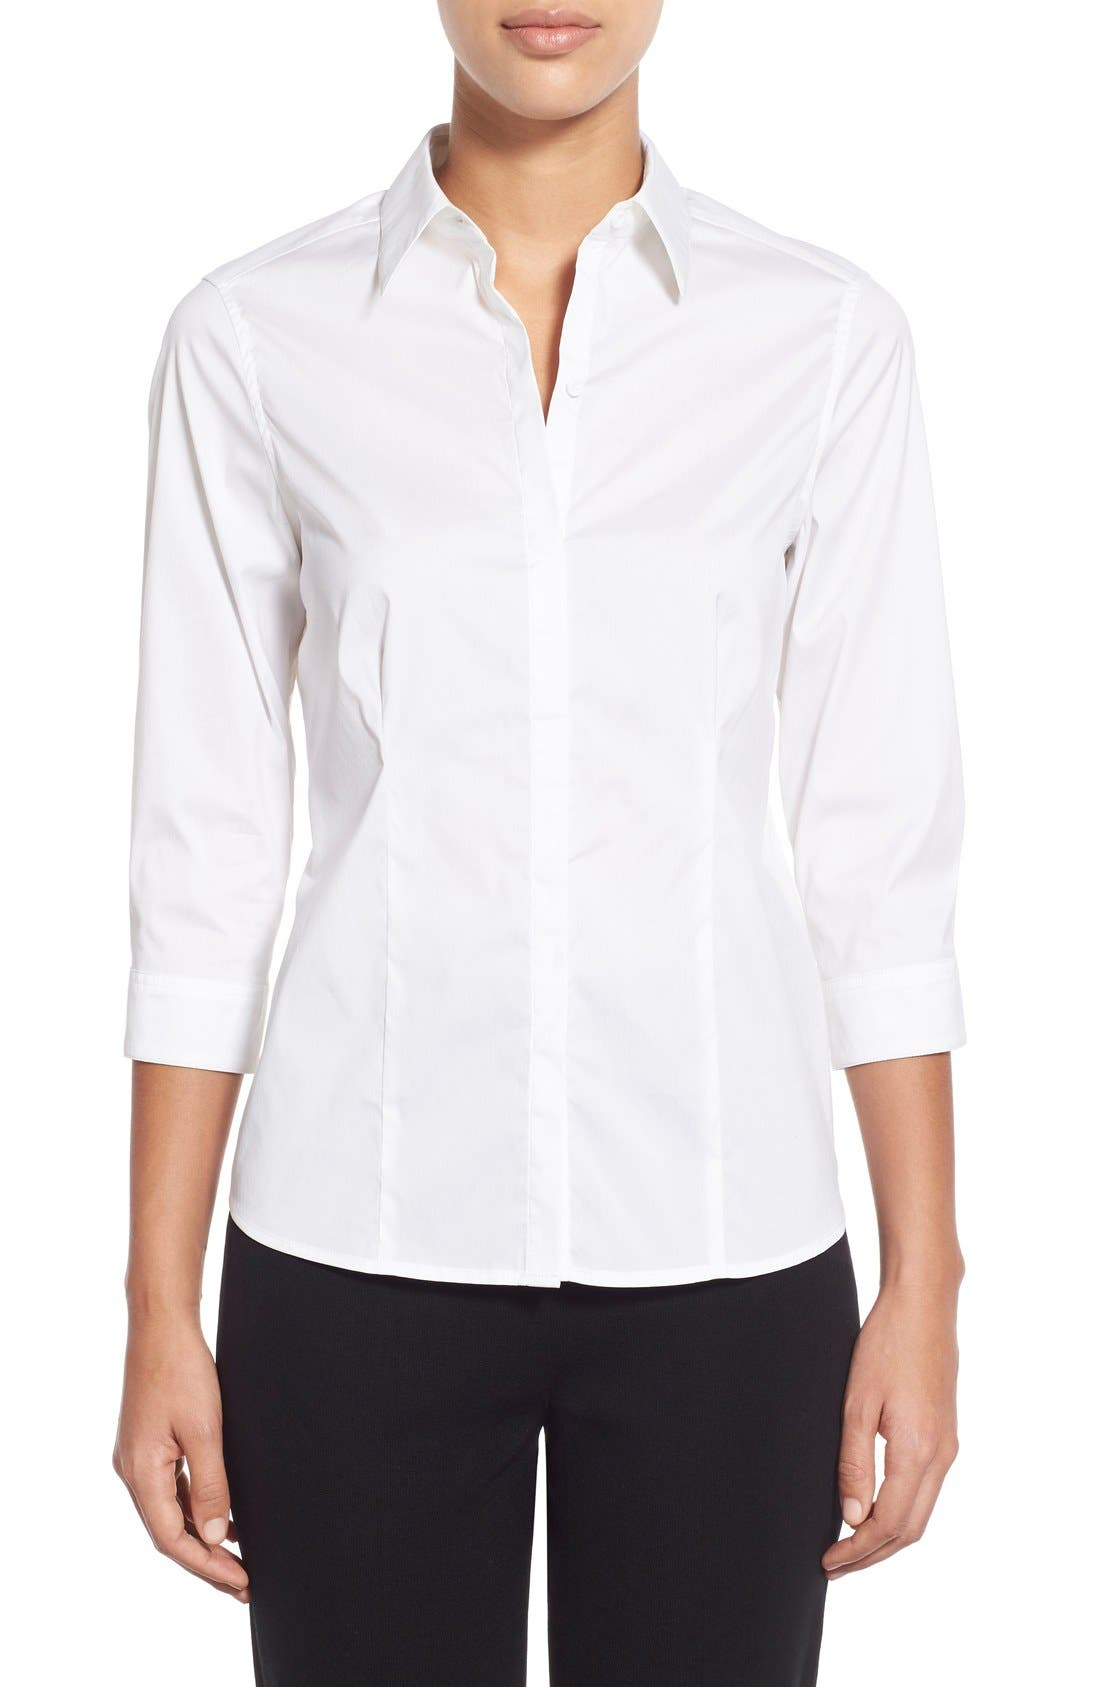 Alternate Image 1 Selected - Ming Wang Stretch Poplin Shirt